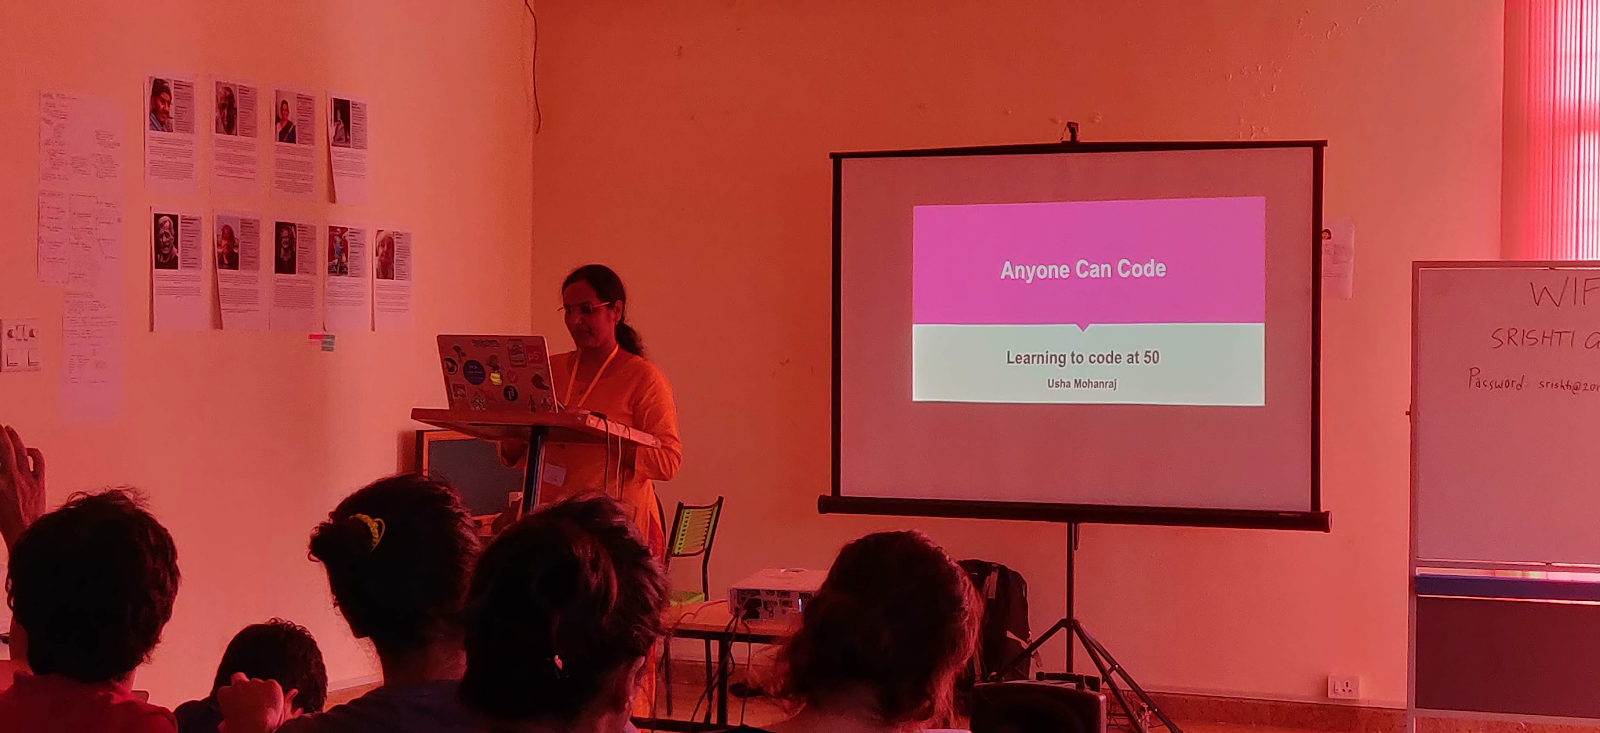 """Usha Mohanraj presenting her talk """"Anyone Can Code: Learning to code at 50"""""""